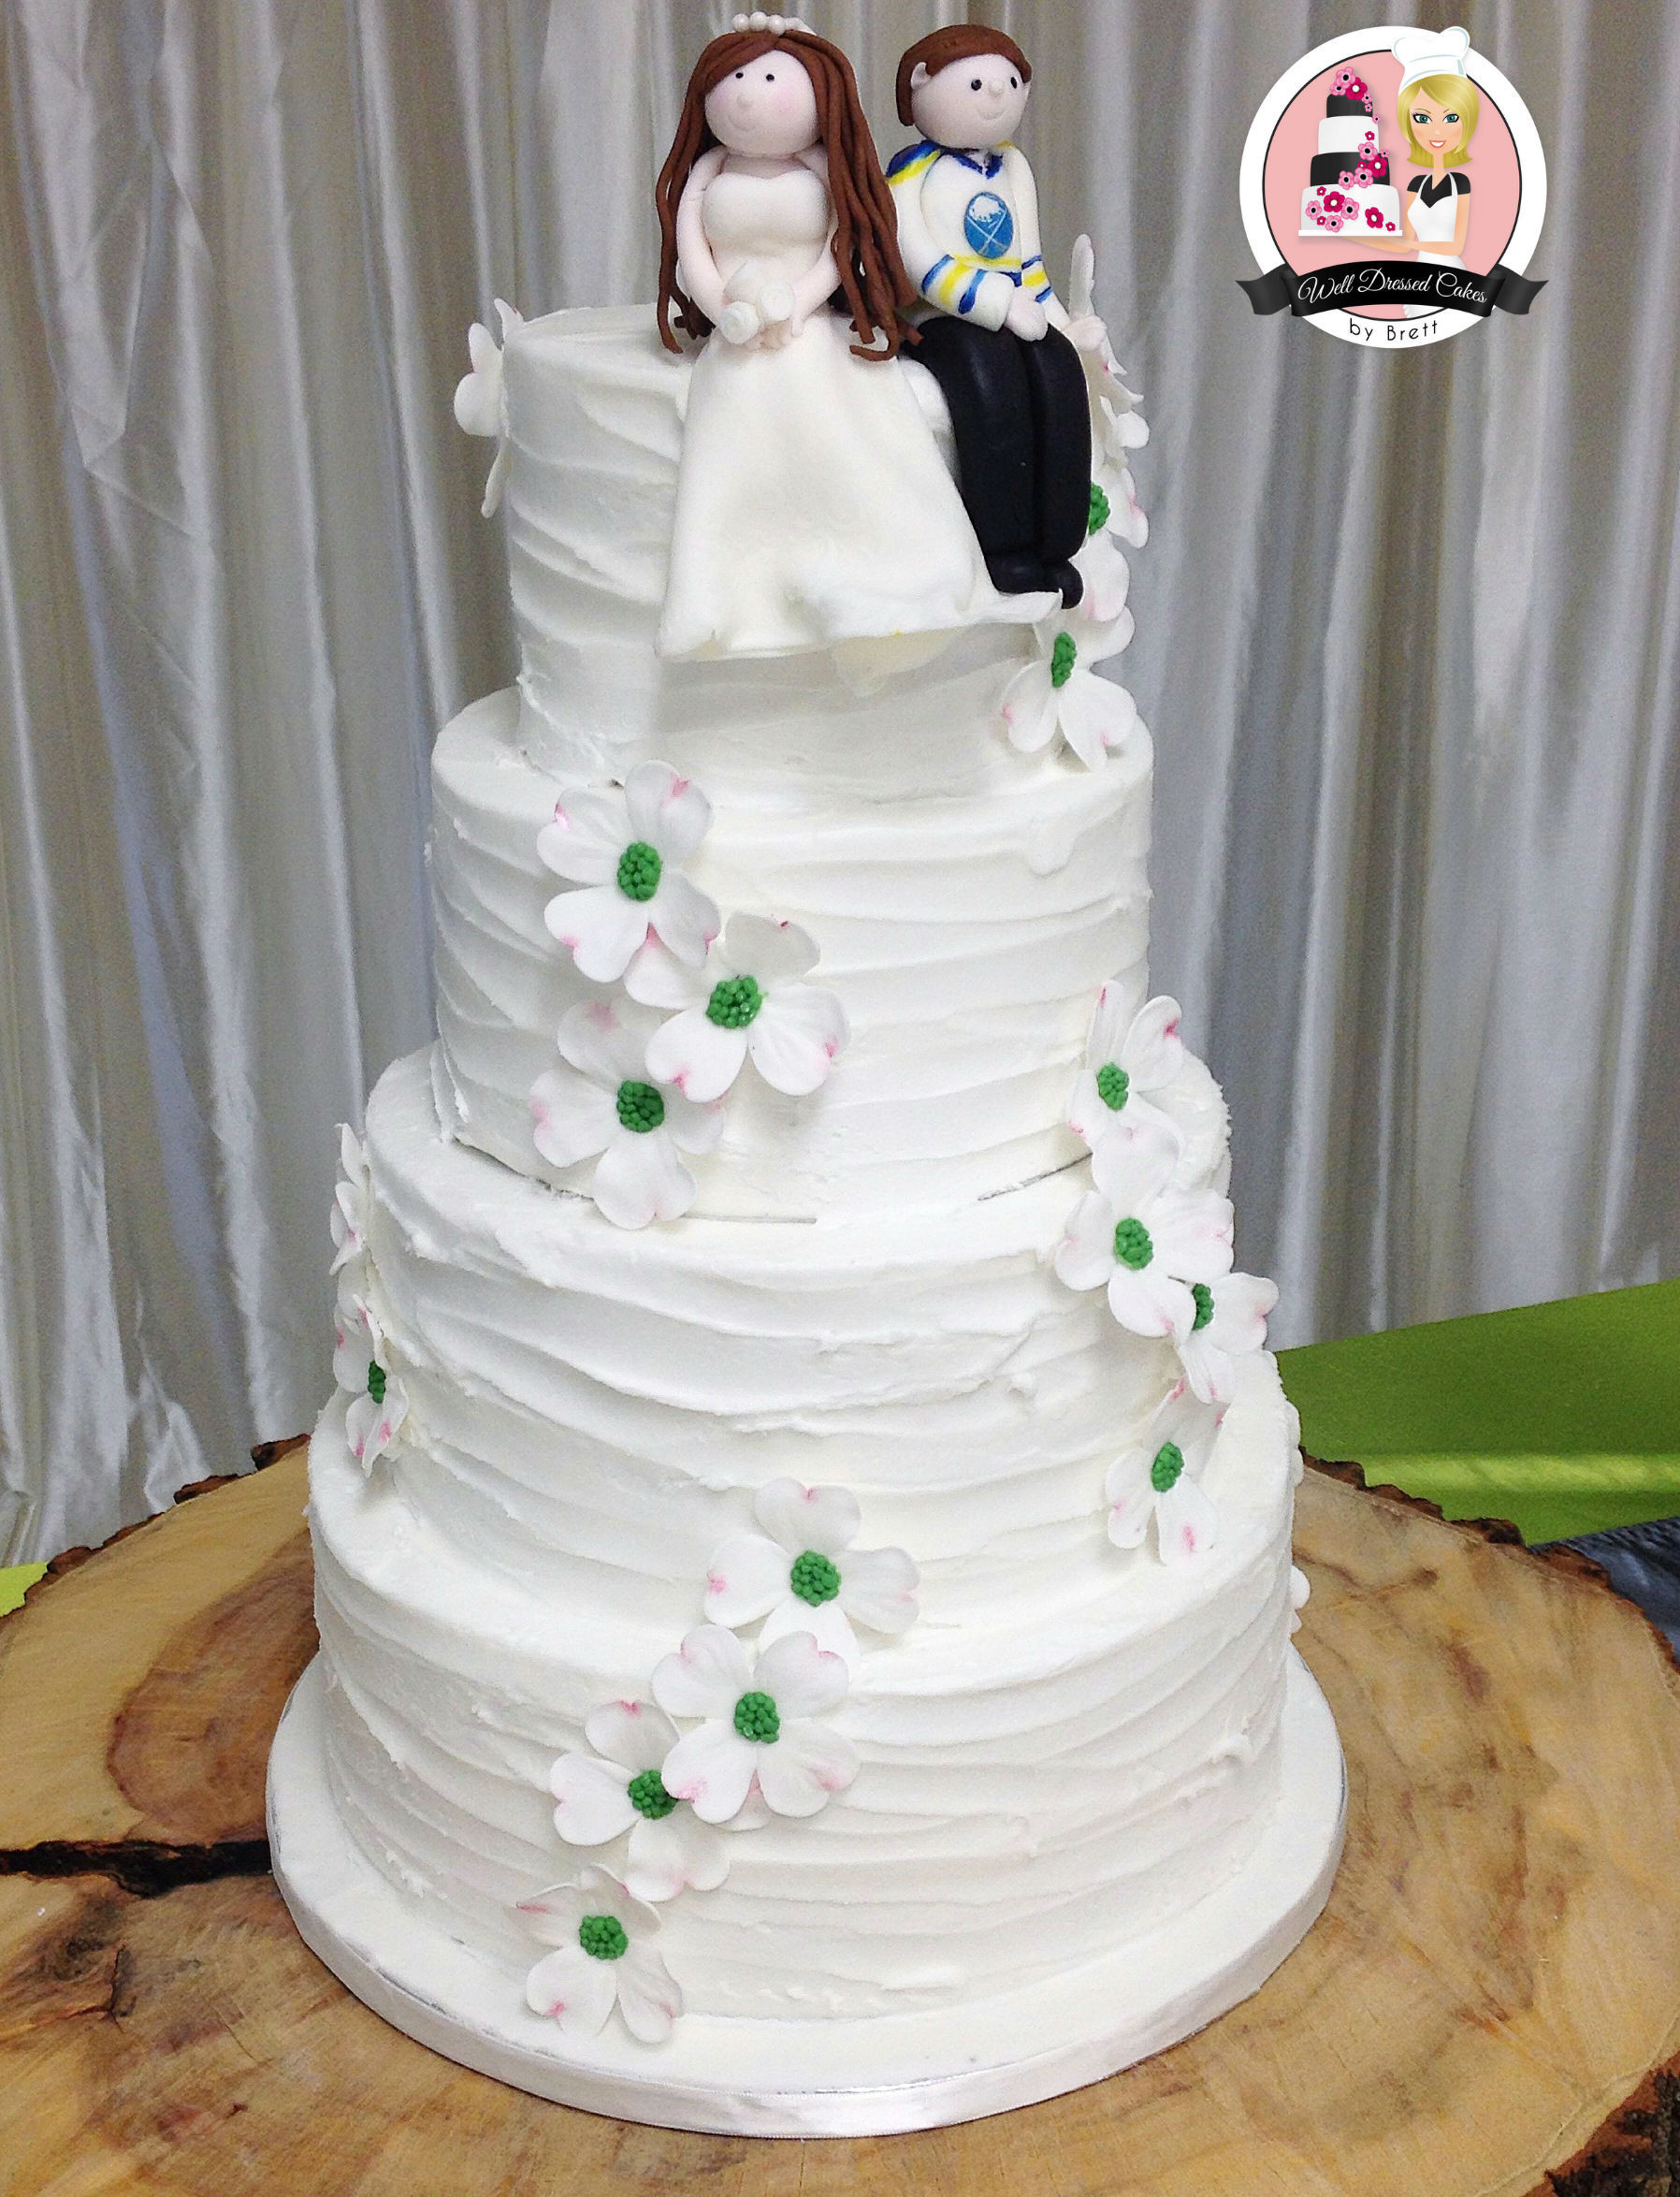 Rustic Buttercream Wedding Cakes  Well Dressed Cakes by Brett – Wedding Cakes